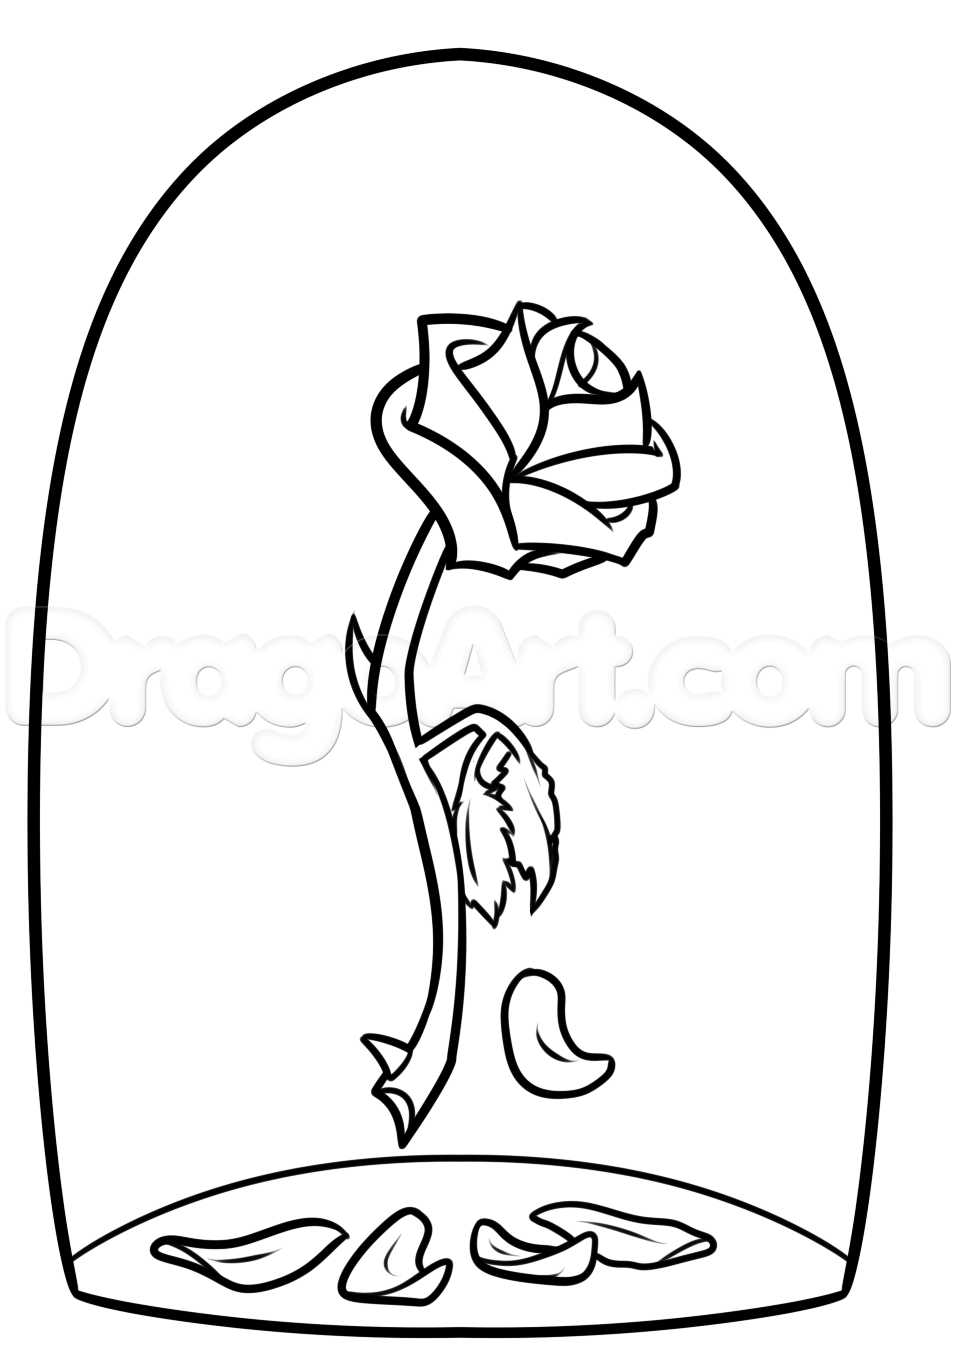 Beauty and the beast flower clipart black and white vector freeuse stock beauty and the beast rose drawing step 7 | Business | Rose drawing ... vector freeuse stock